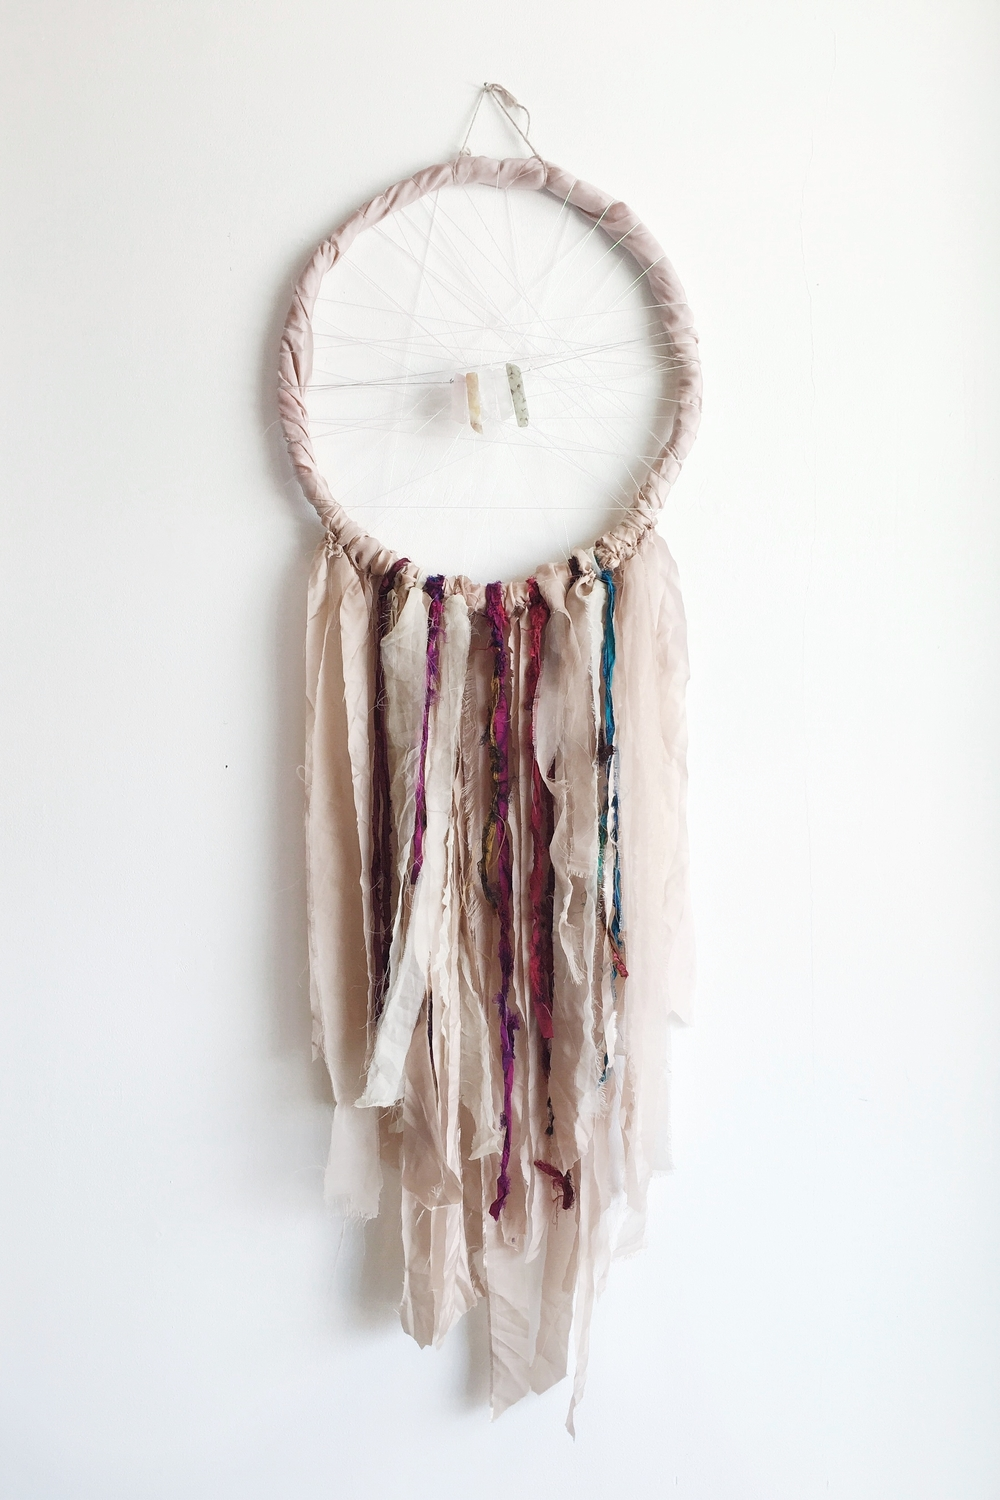 3 - DREAM CATCHER.jpg